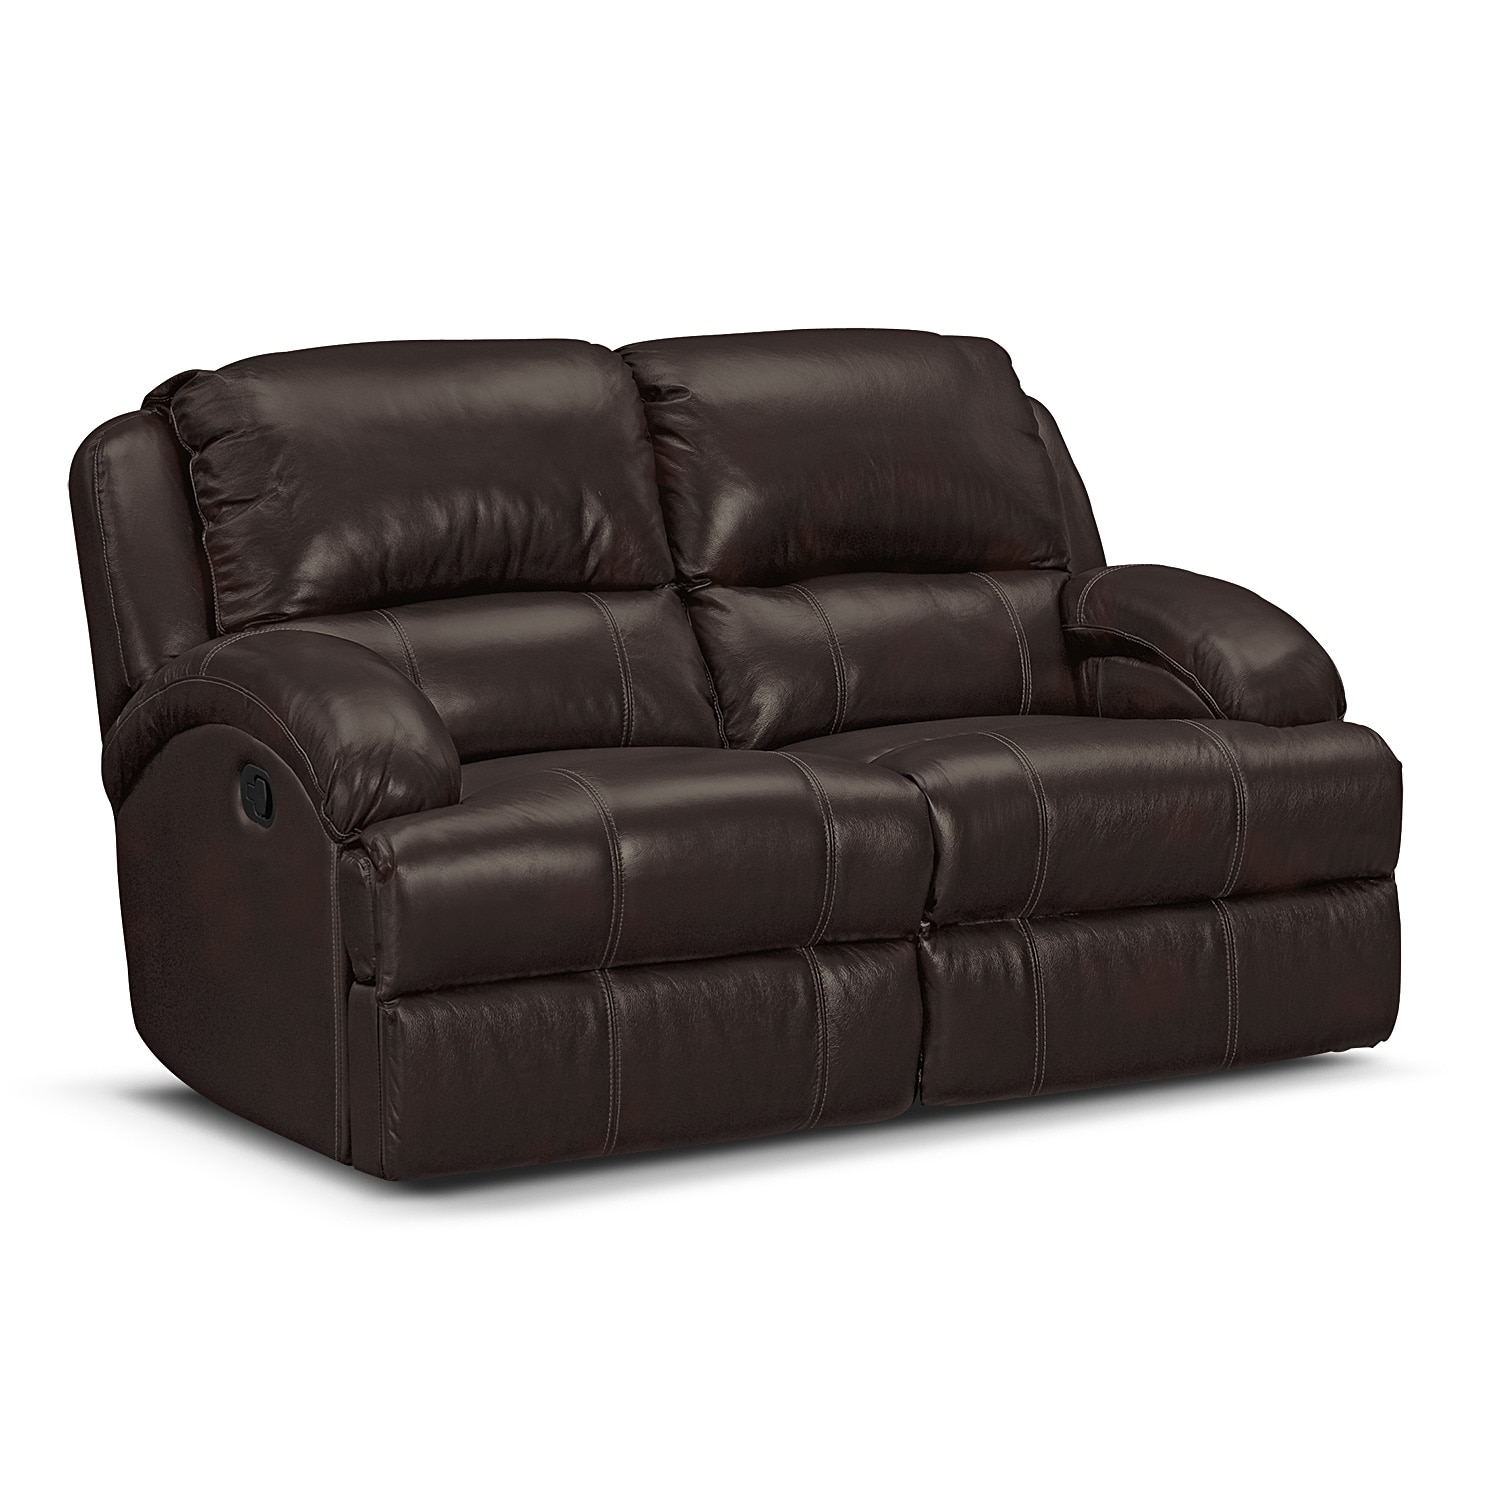 Document moved Leather reclining loveseat